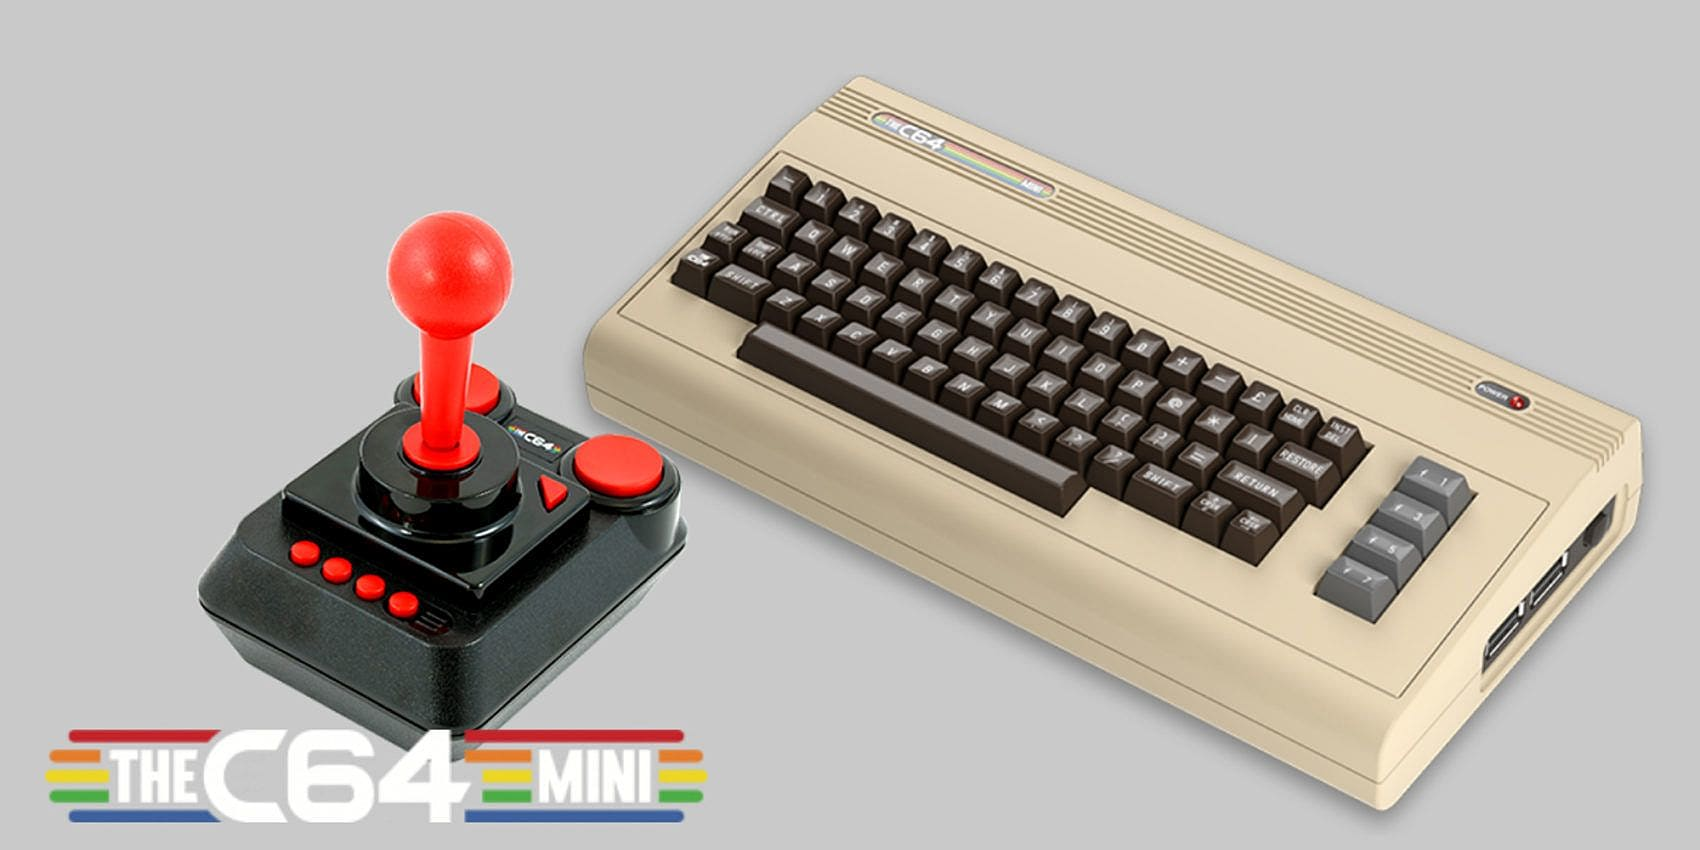 Full-Sized C64 Maxi Remake Gets Price and Release Date